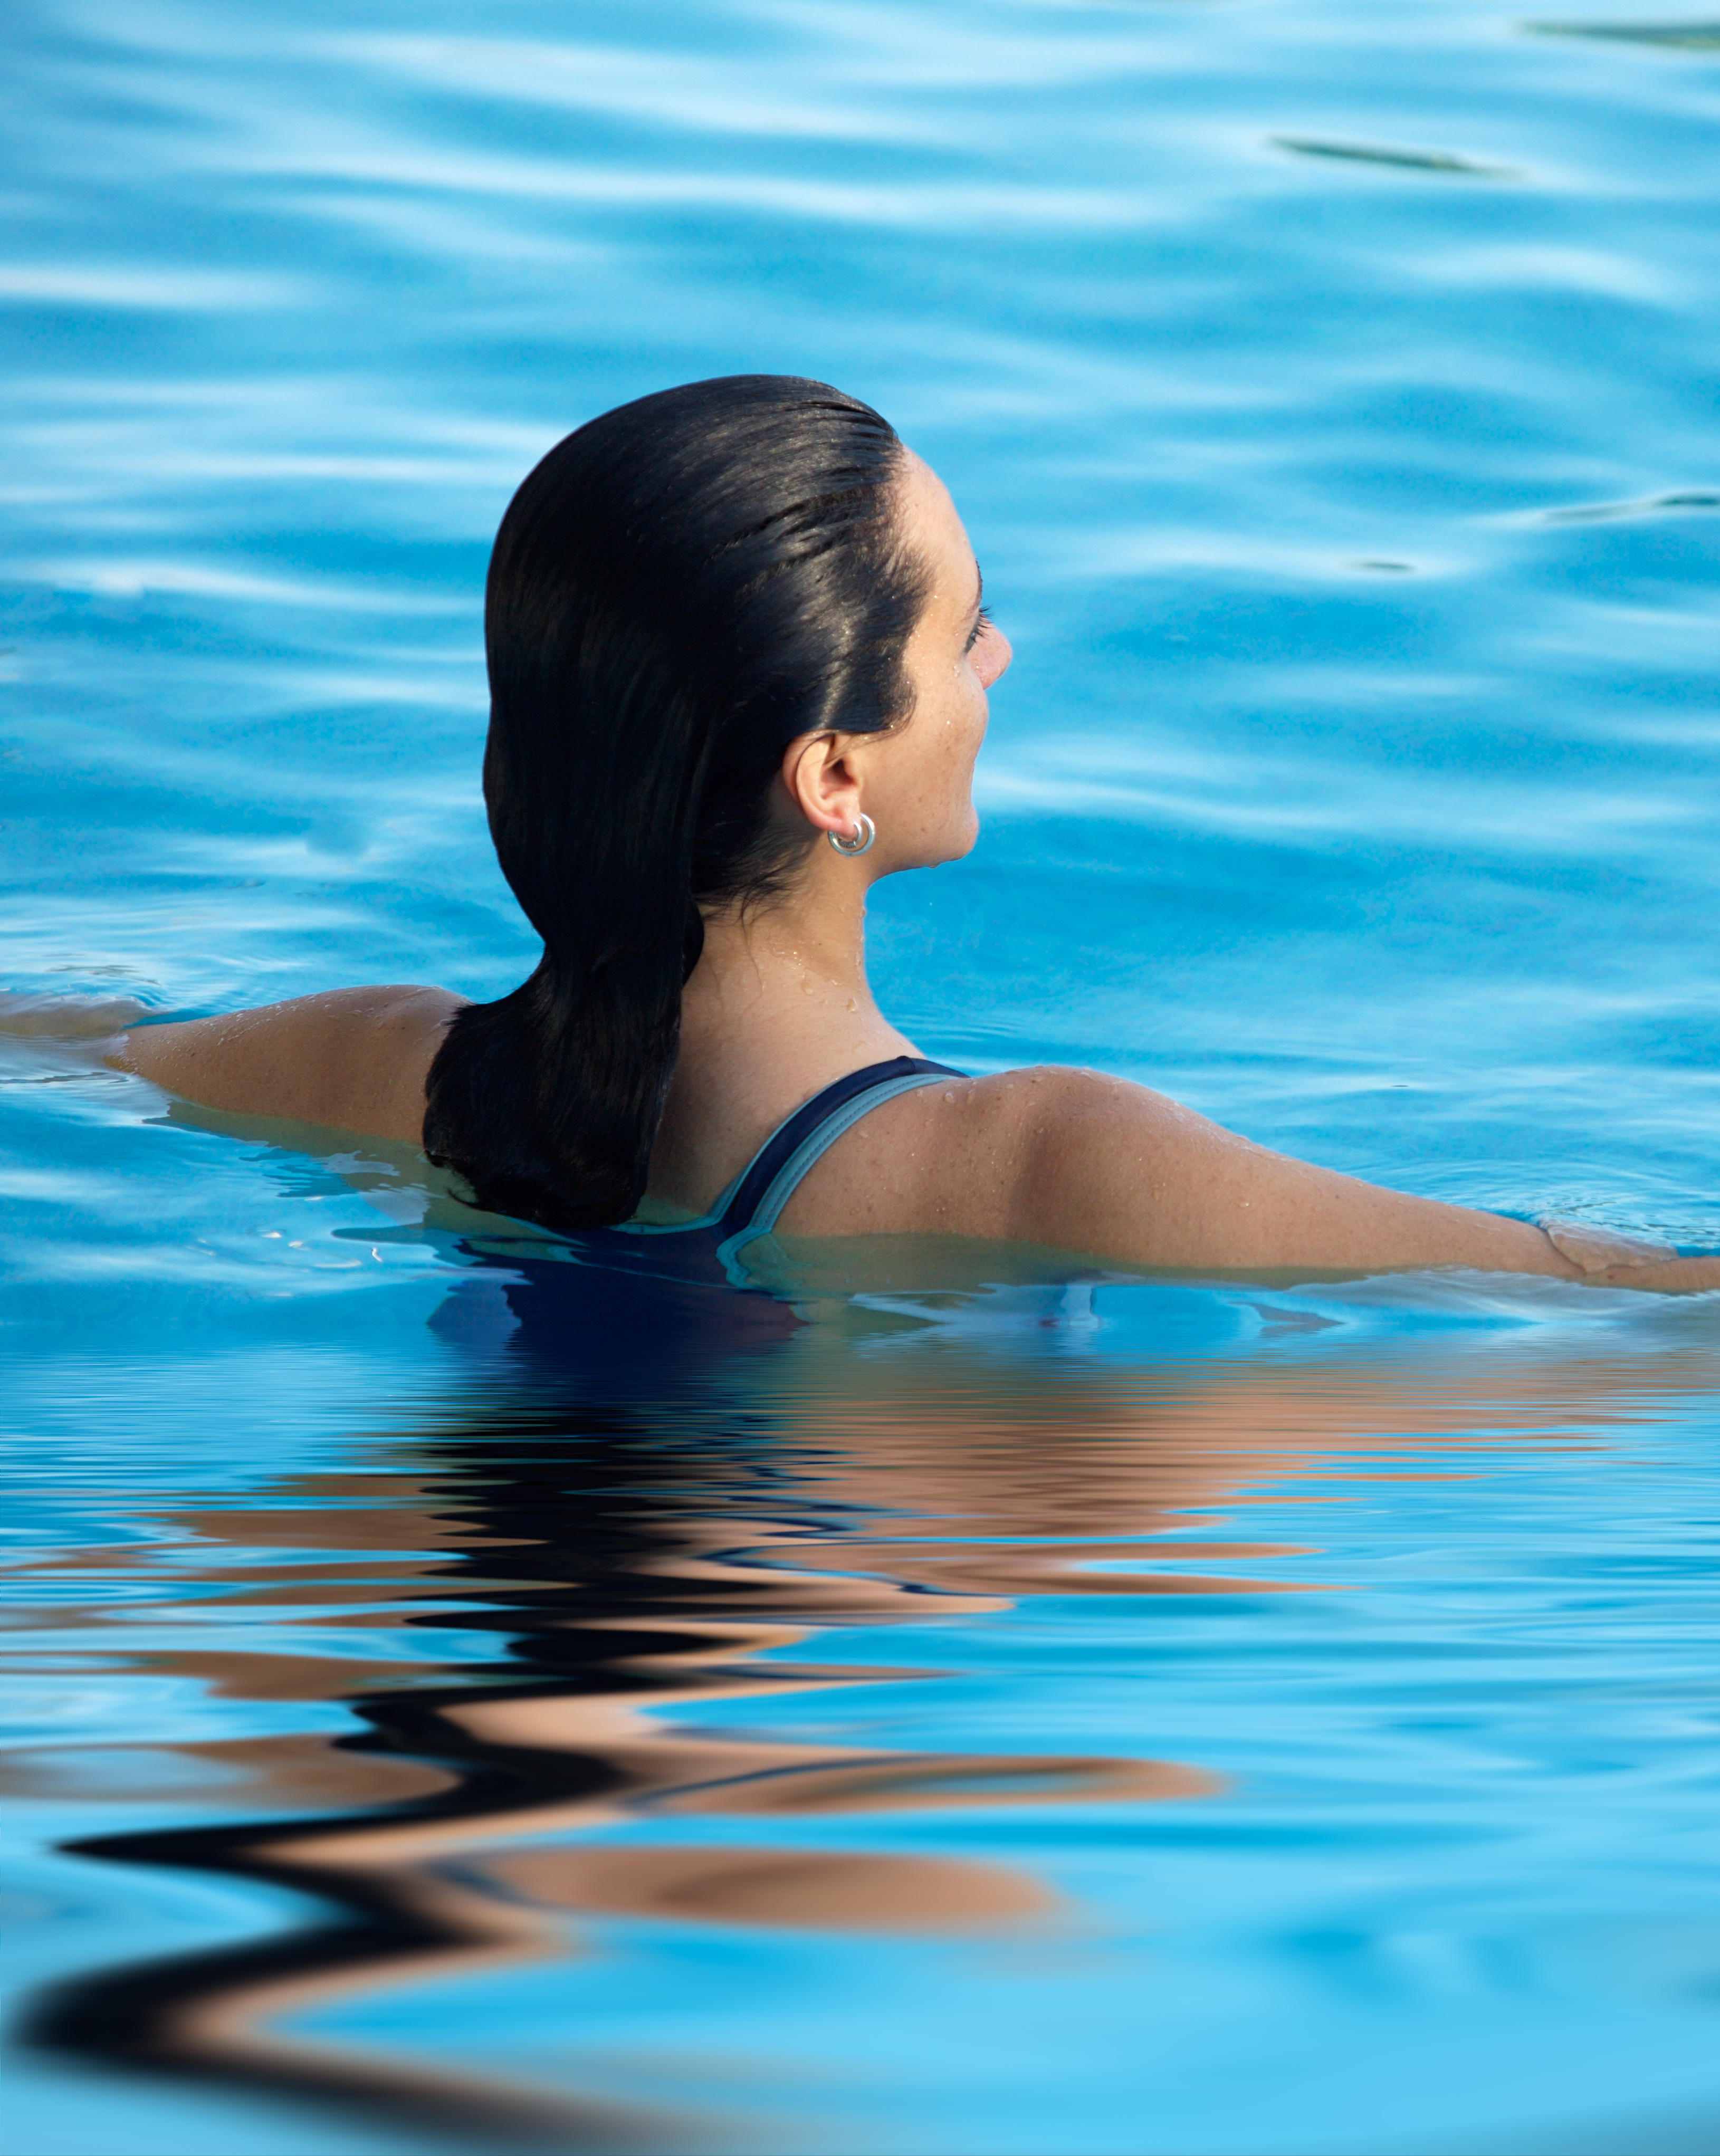 How does chlorinated pool water affect hair?